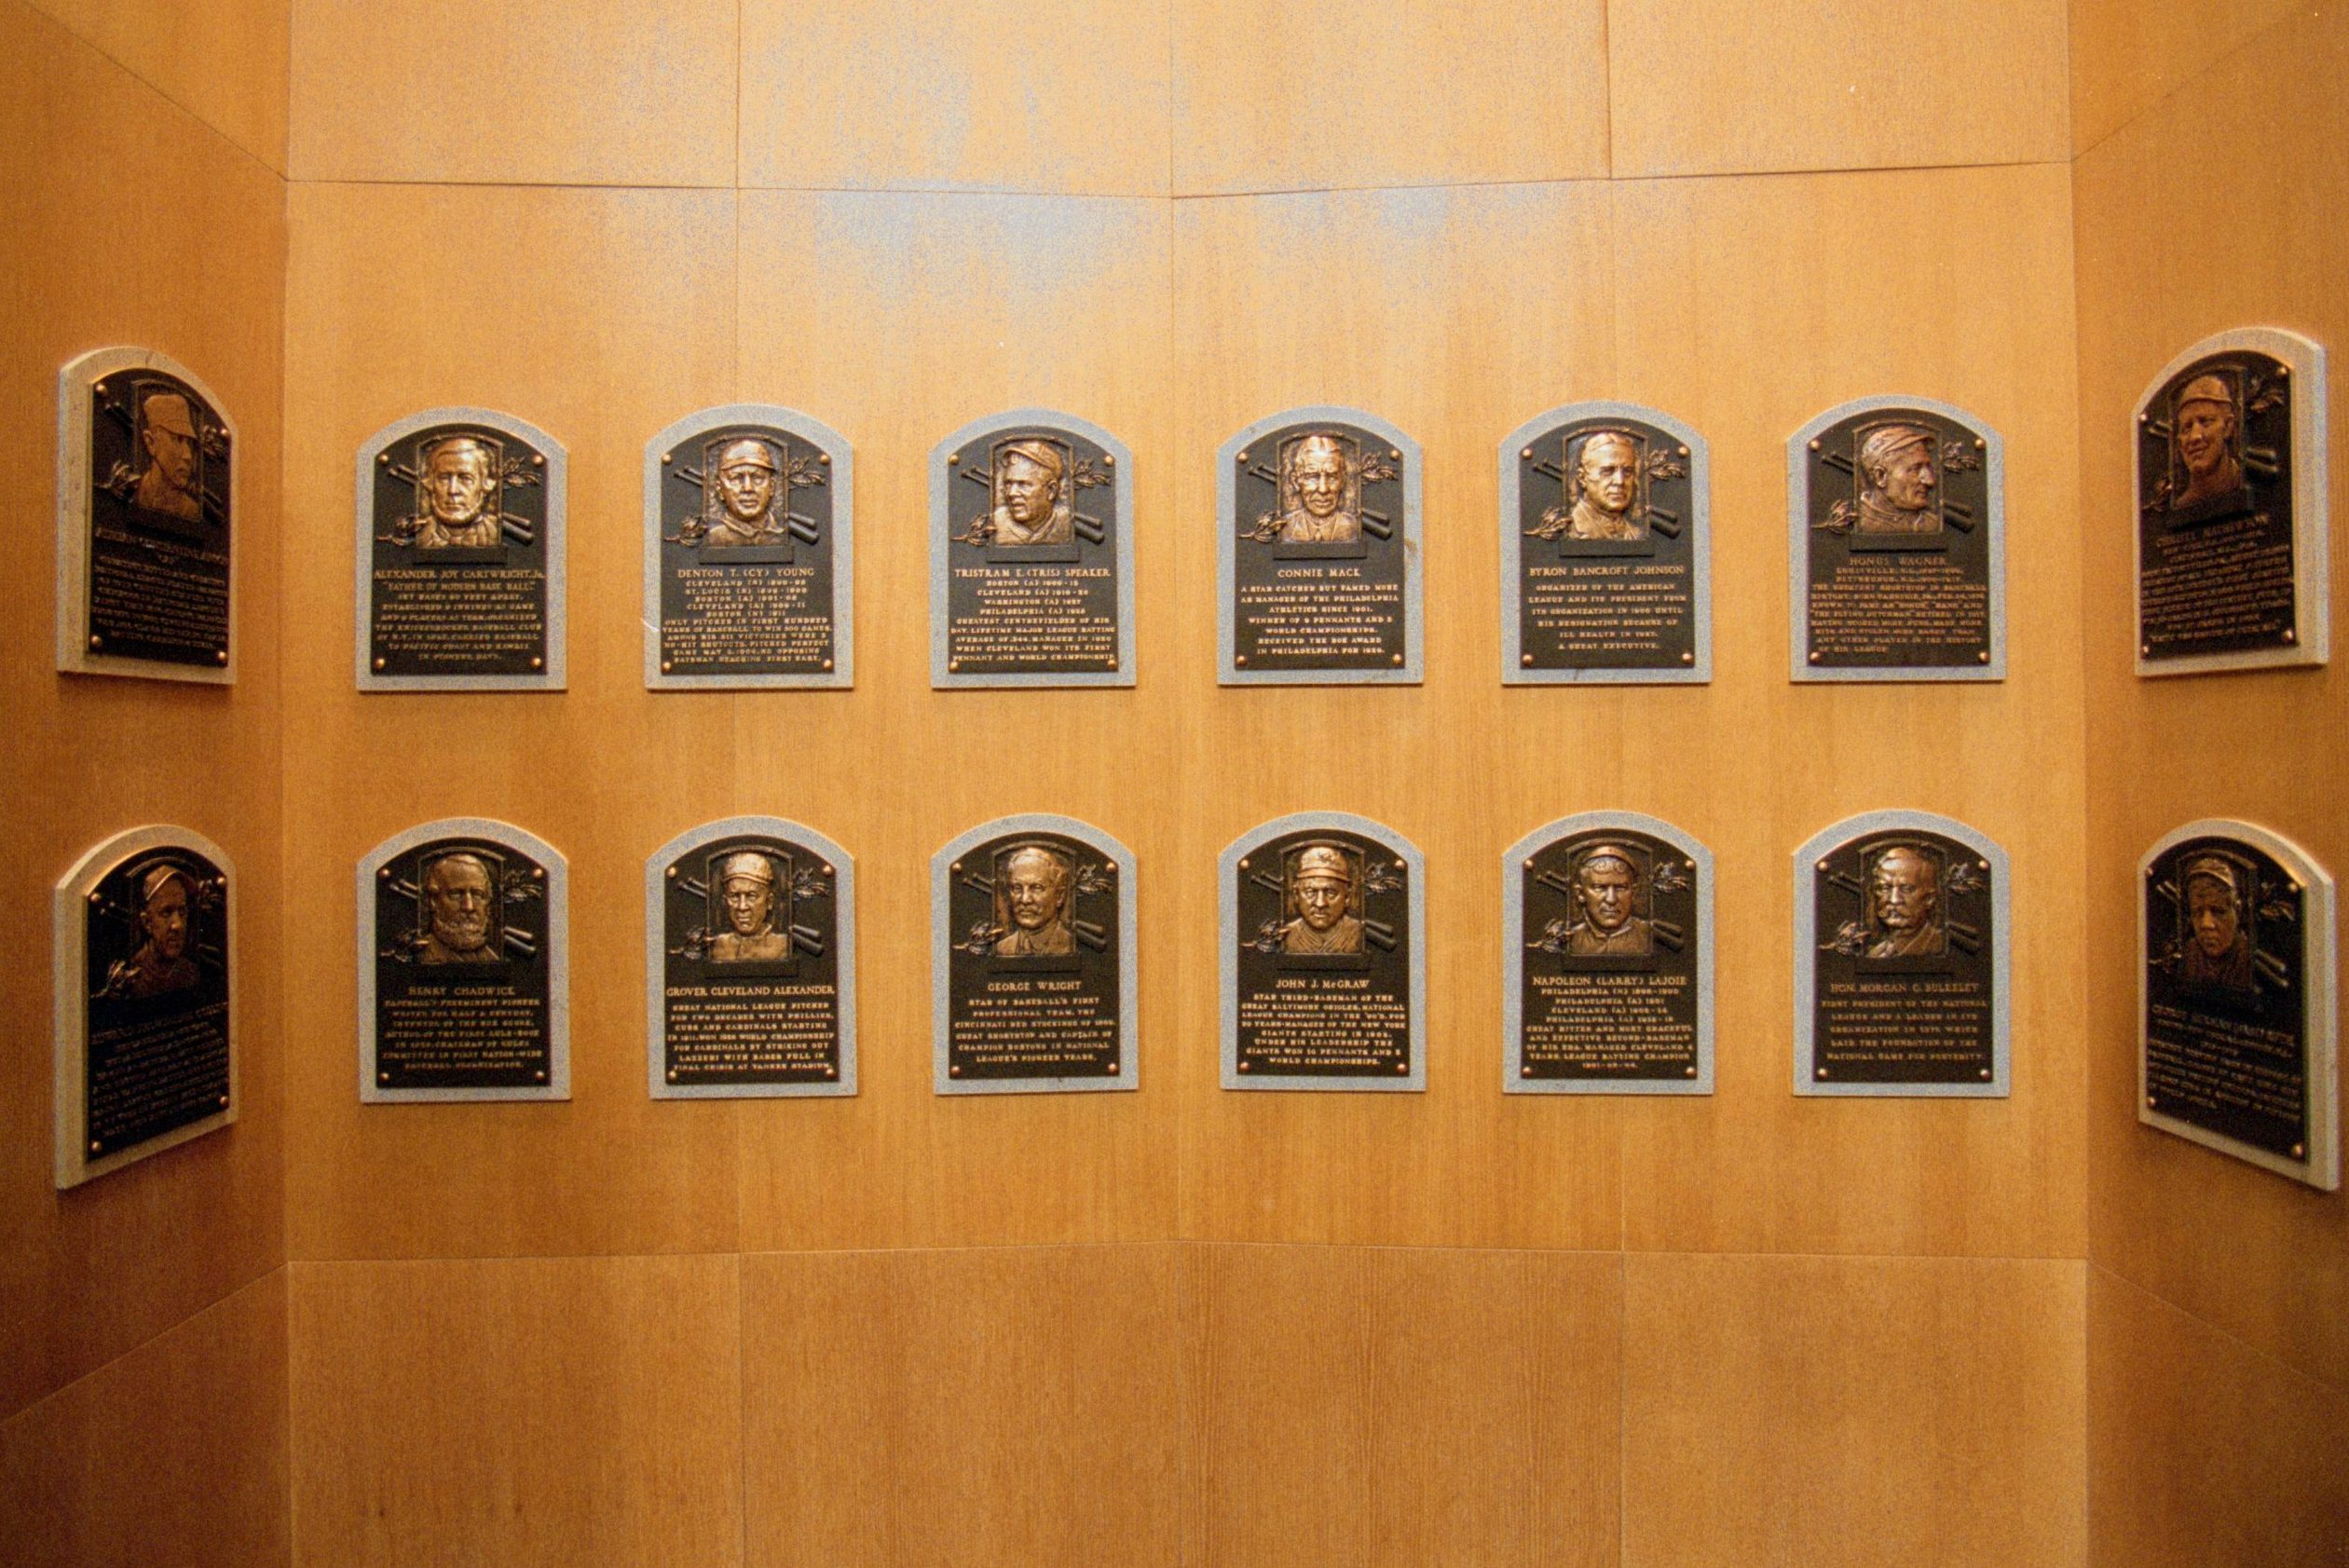 Wall of Plaques dedicated to the Legends of Baseball at the Baseball Hall of Fame in Cooperstown, New York.